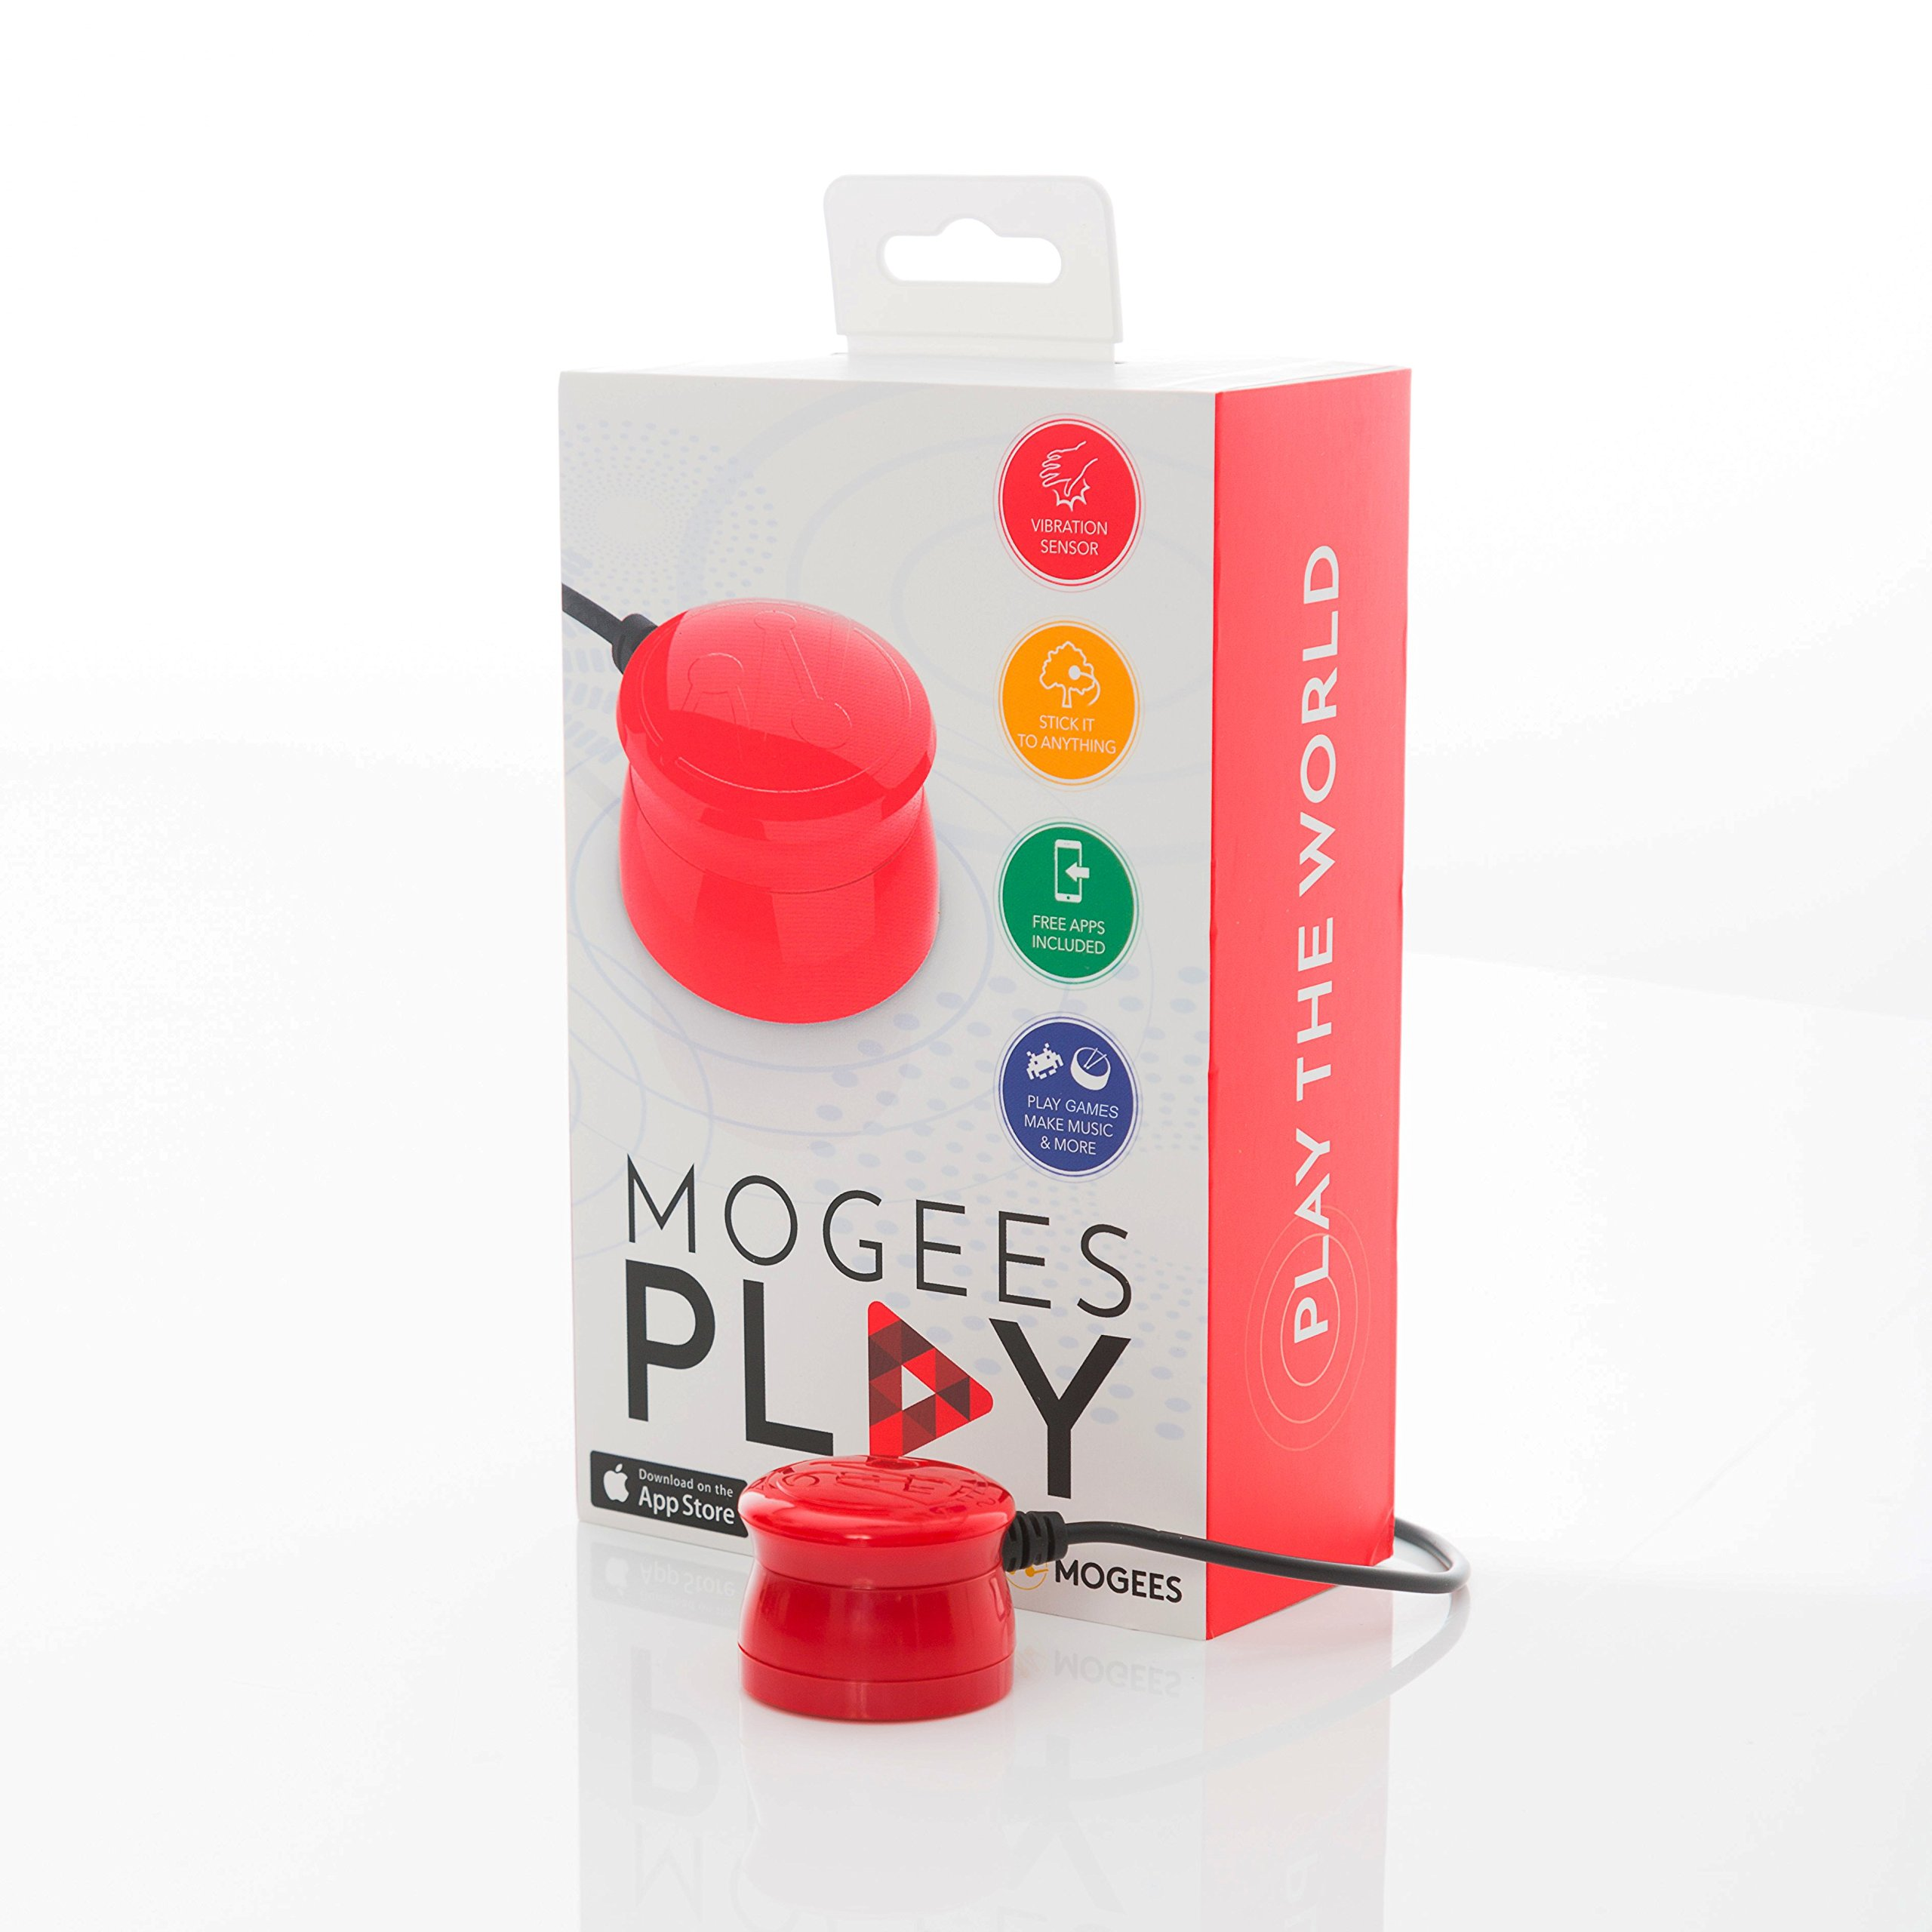 Mogees Play: Learn and Create Music with any Object as Your Instrument. For iPhone, iPad.